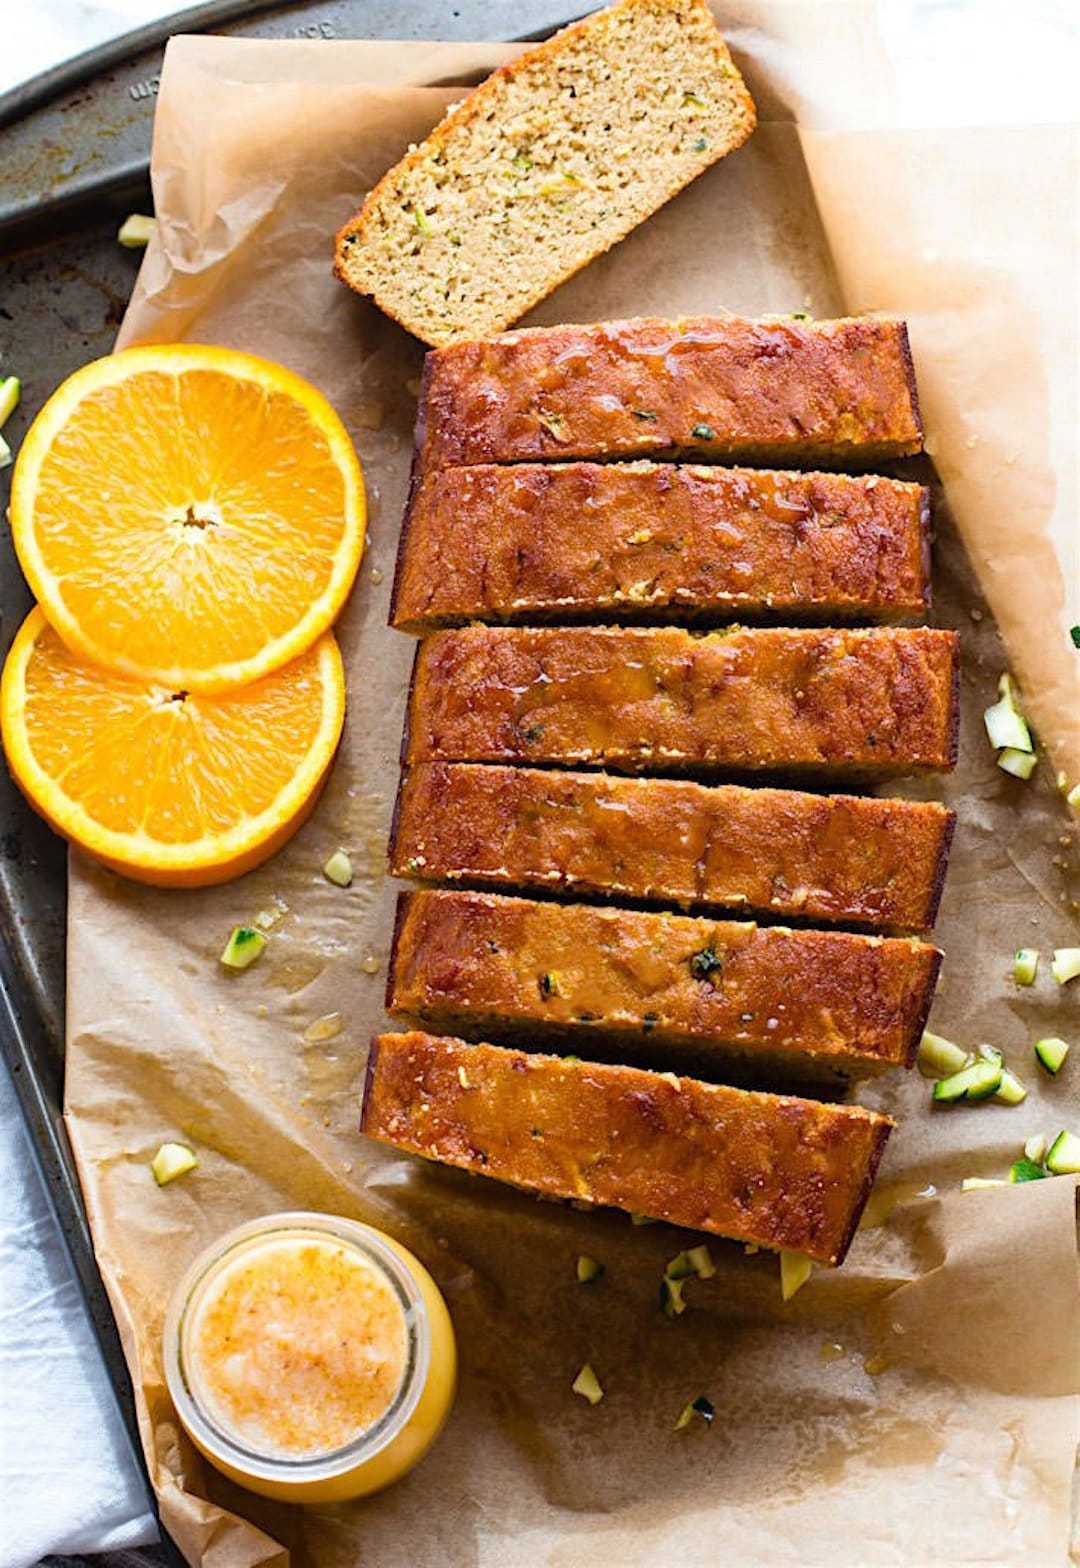 Zesty Orange Cream Paleo Zucchini Bread! A classic zucchini bread recipe made healthy, paleo, and packed with vitamin C! This paleo zucchini bread is an easy to make and super refreshing with a ginger glaze to drizzle on top. One of our favorites year round!